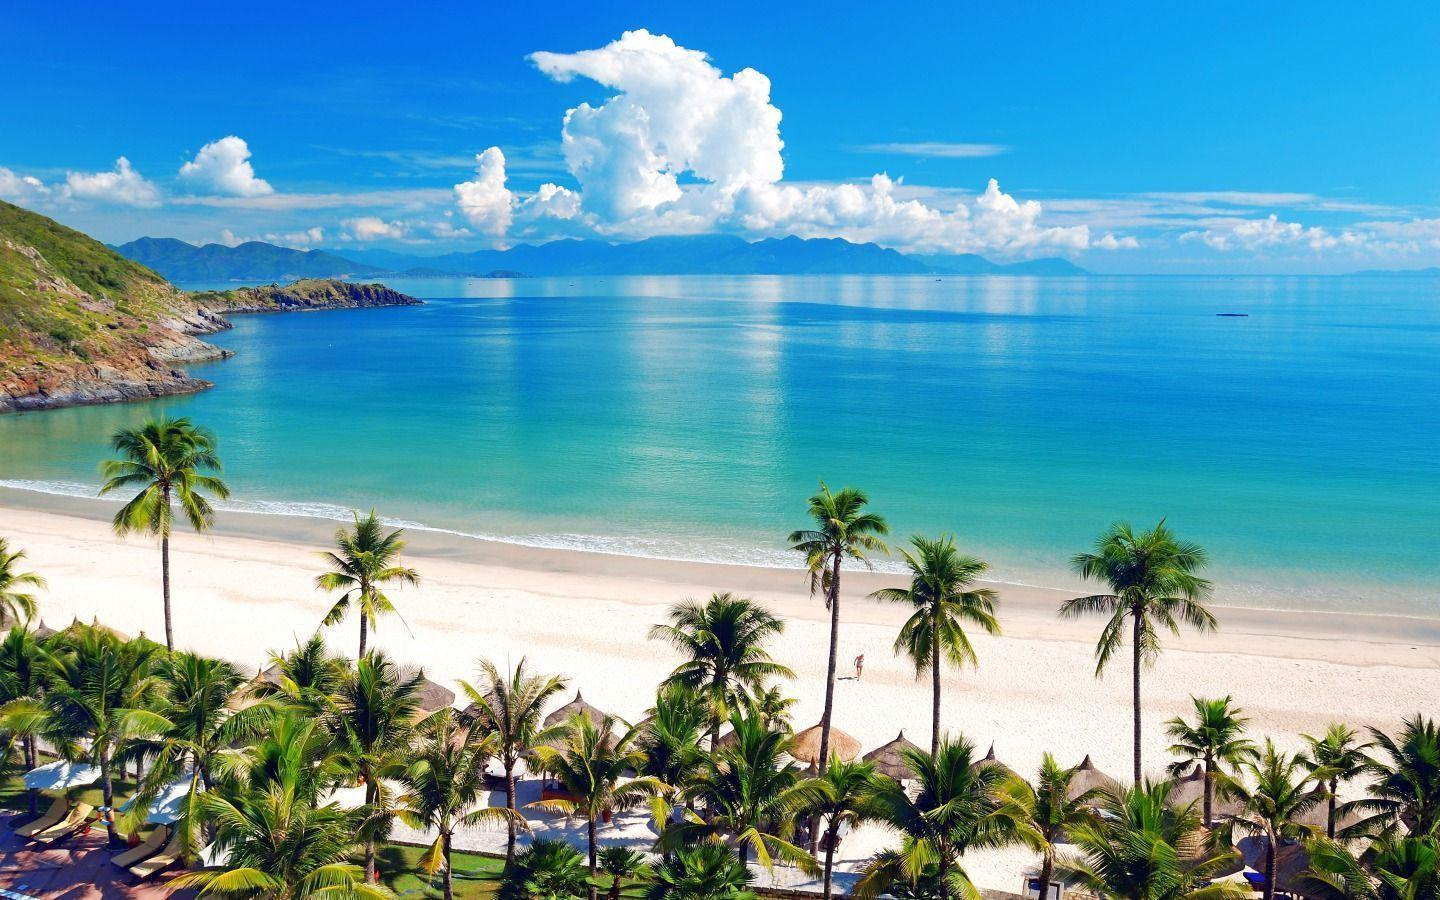 Beach Pictures For Desktop Backgrounds Wallpaper Cave